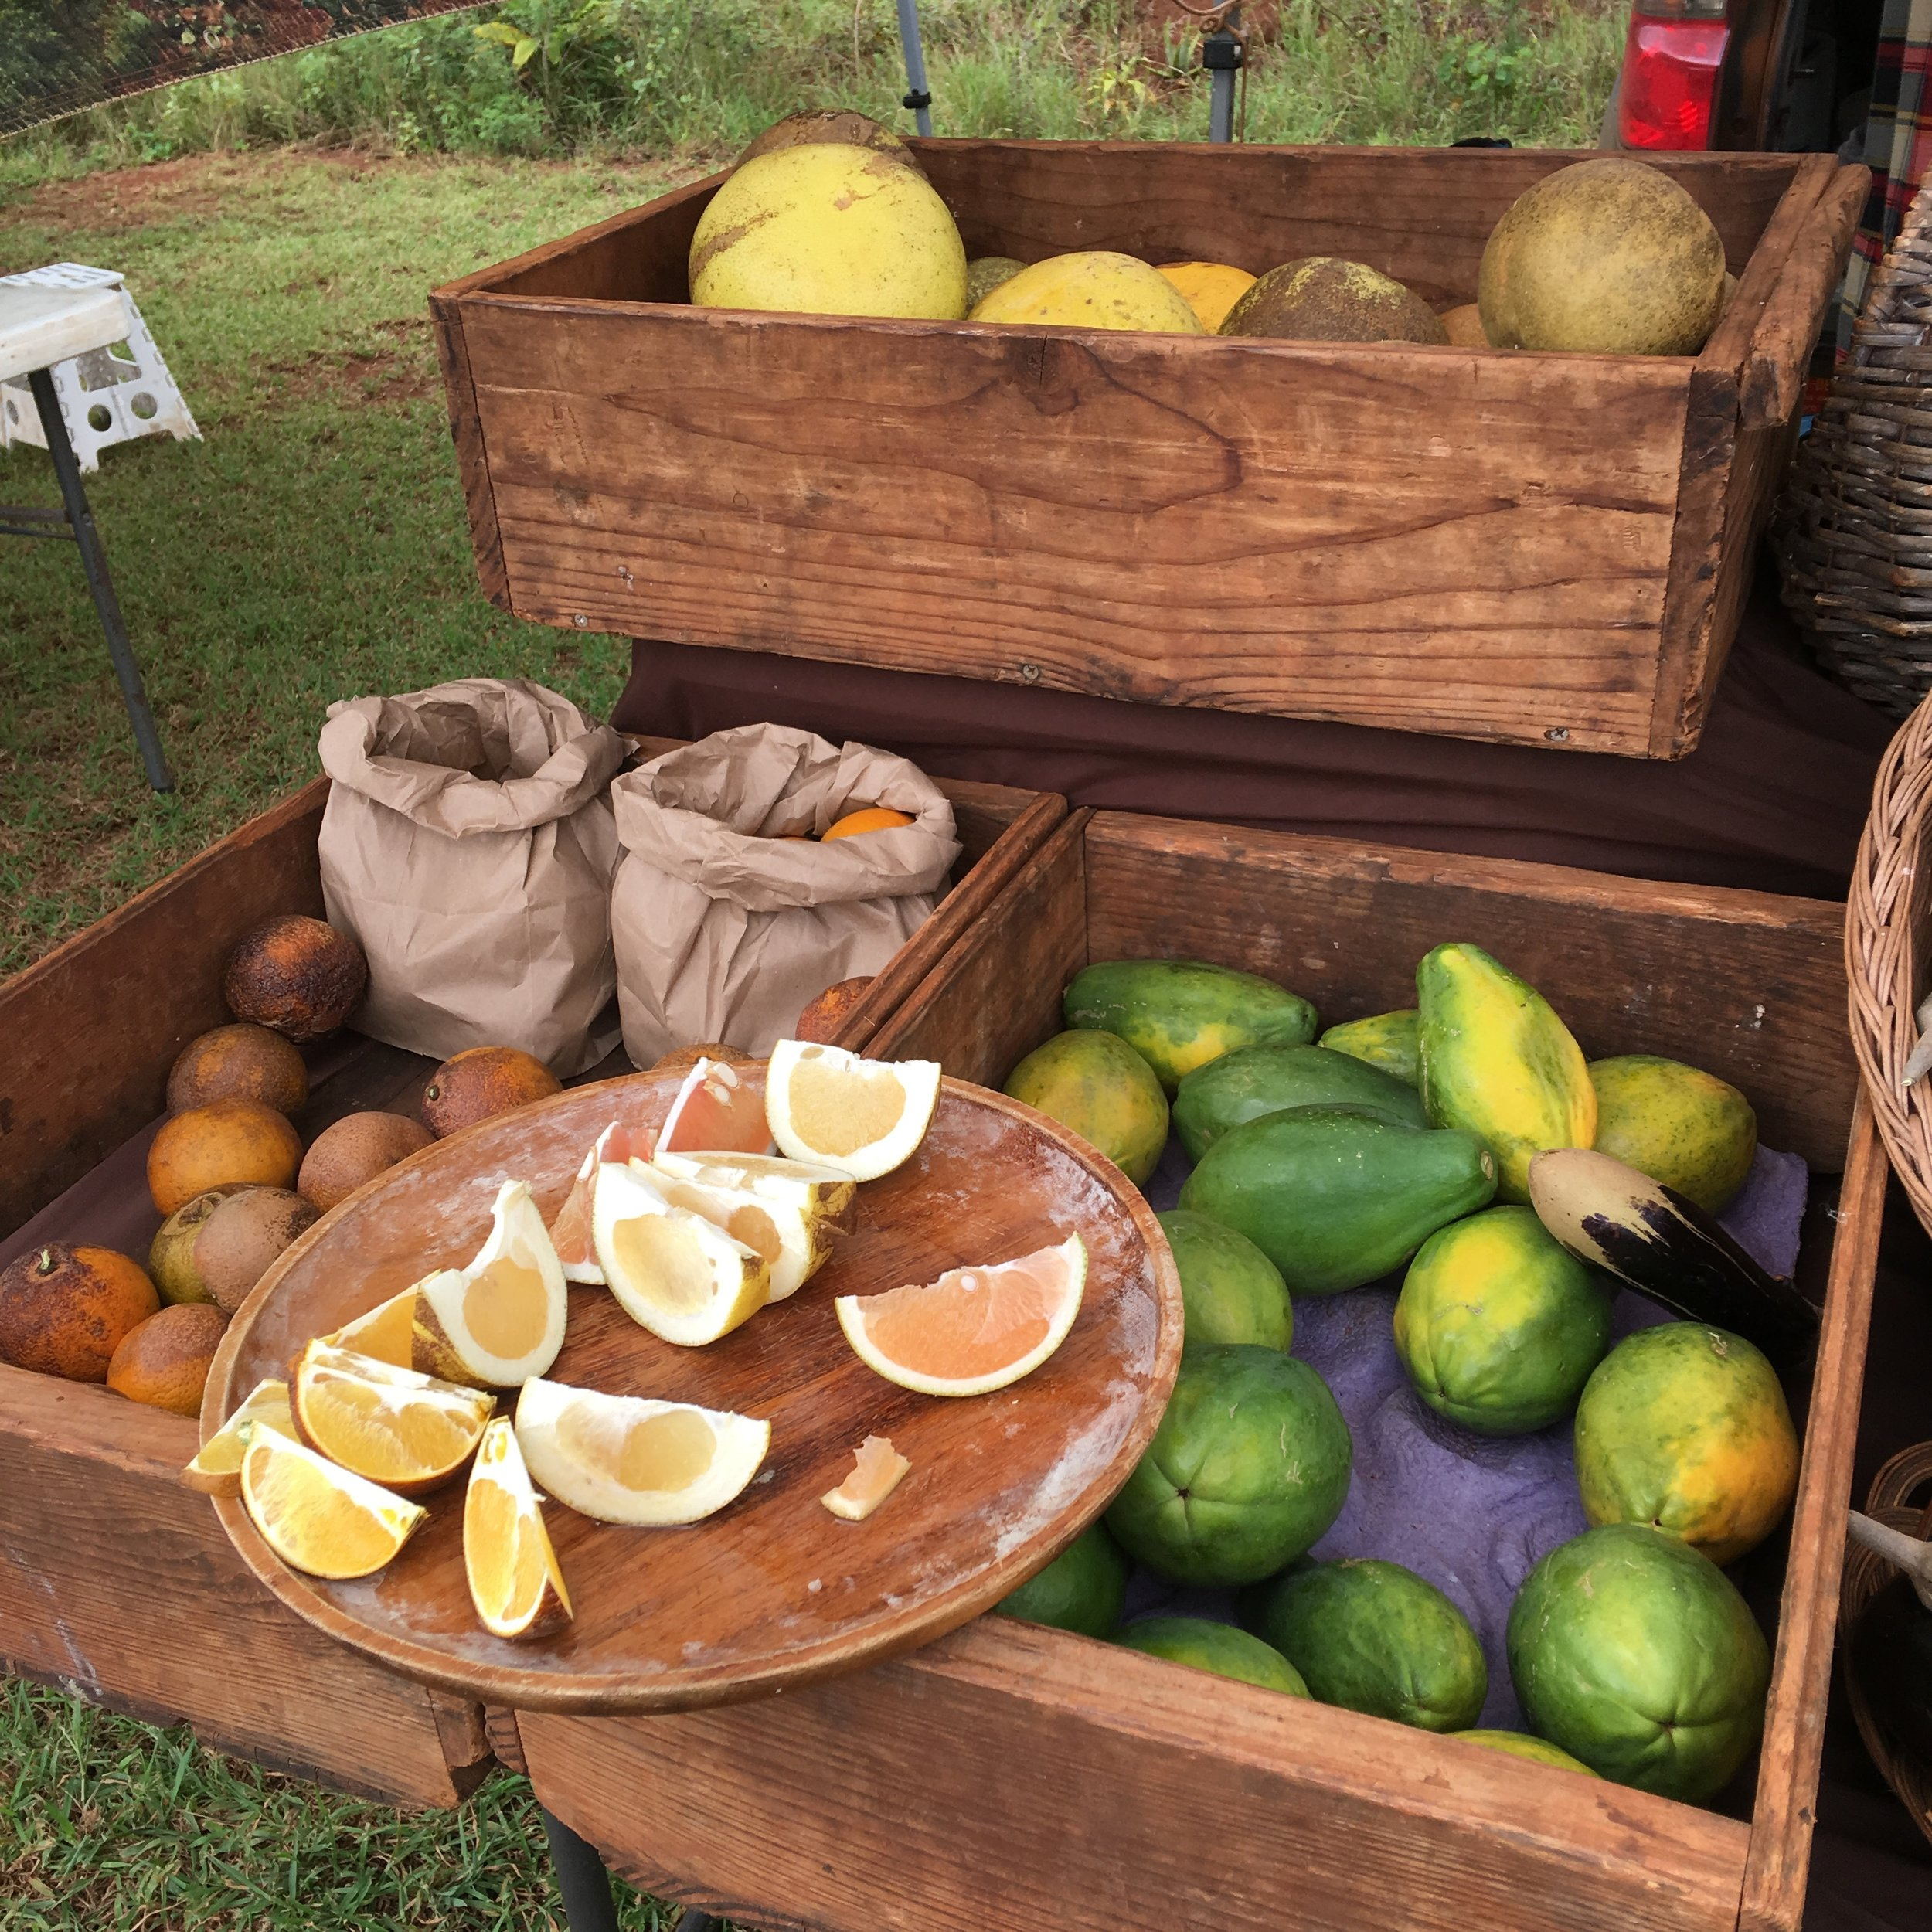 Two Markets A Week - Open from 10am-2pm on Sundays, with locally farmed produce, meats, fish, and other foods; as well as crafts and gifts made by Kauai artisans, and live Tahitian drumming performances throughout the day. Free Parking and Keiki FriendlyOur market has a rotating collection of farmers, food vendors, crafters, makers, and artists every week in addition to our regular vendors. Every market offers a whole new experience and wondrous finds. Come visit us every Sunday to shop local, support Kauai's farmers and artisans, and to see what's new at the market.